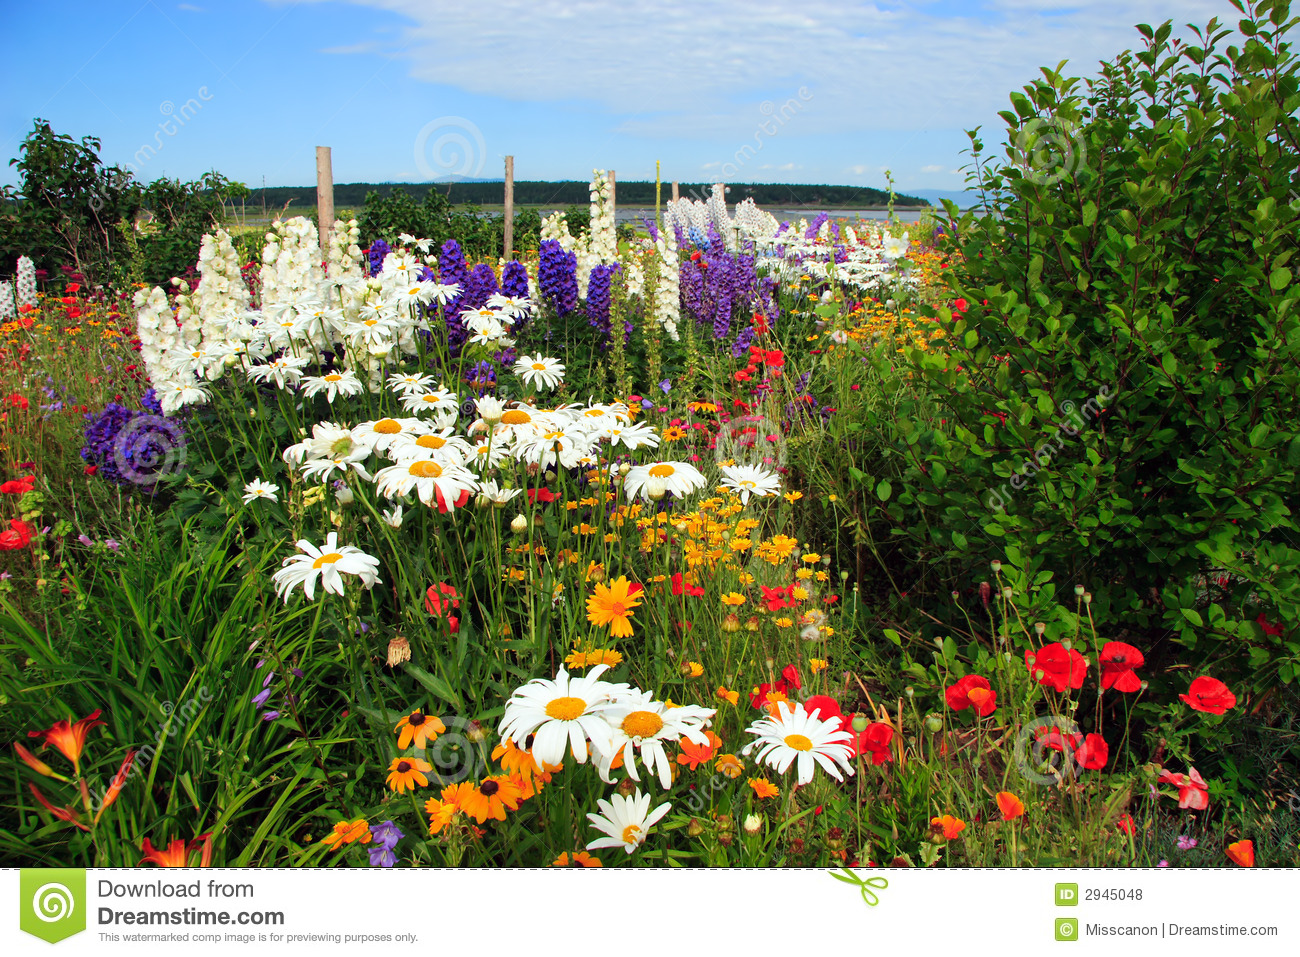 Amazing flower garden stock photo Image of colorful amazing 2945048